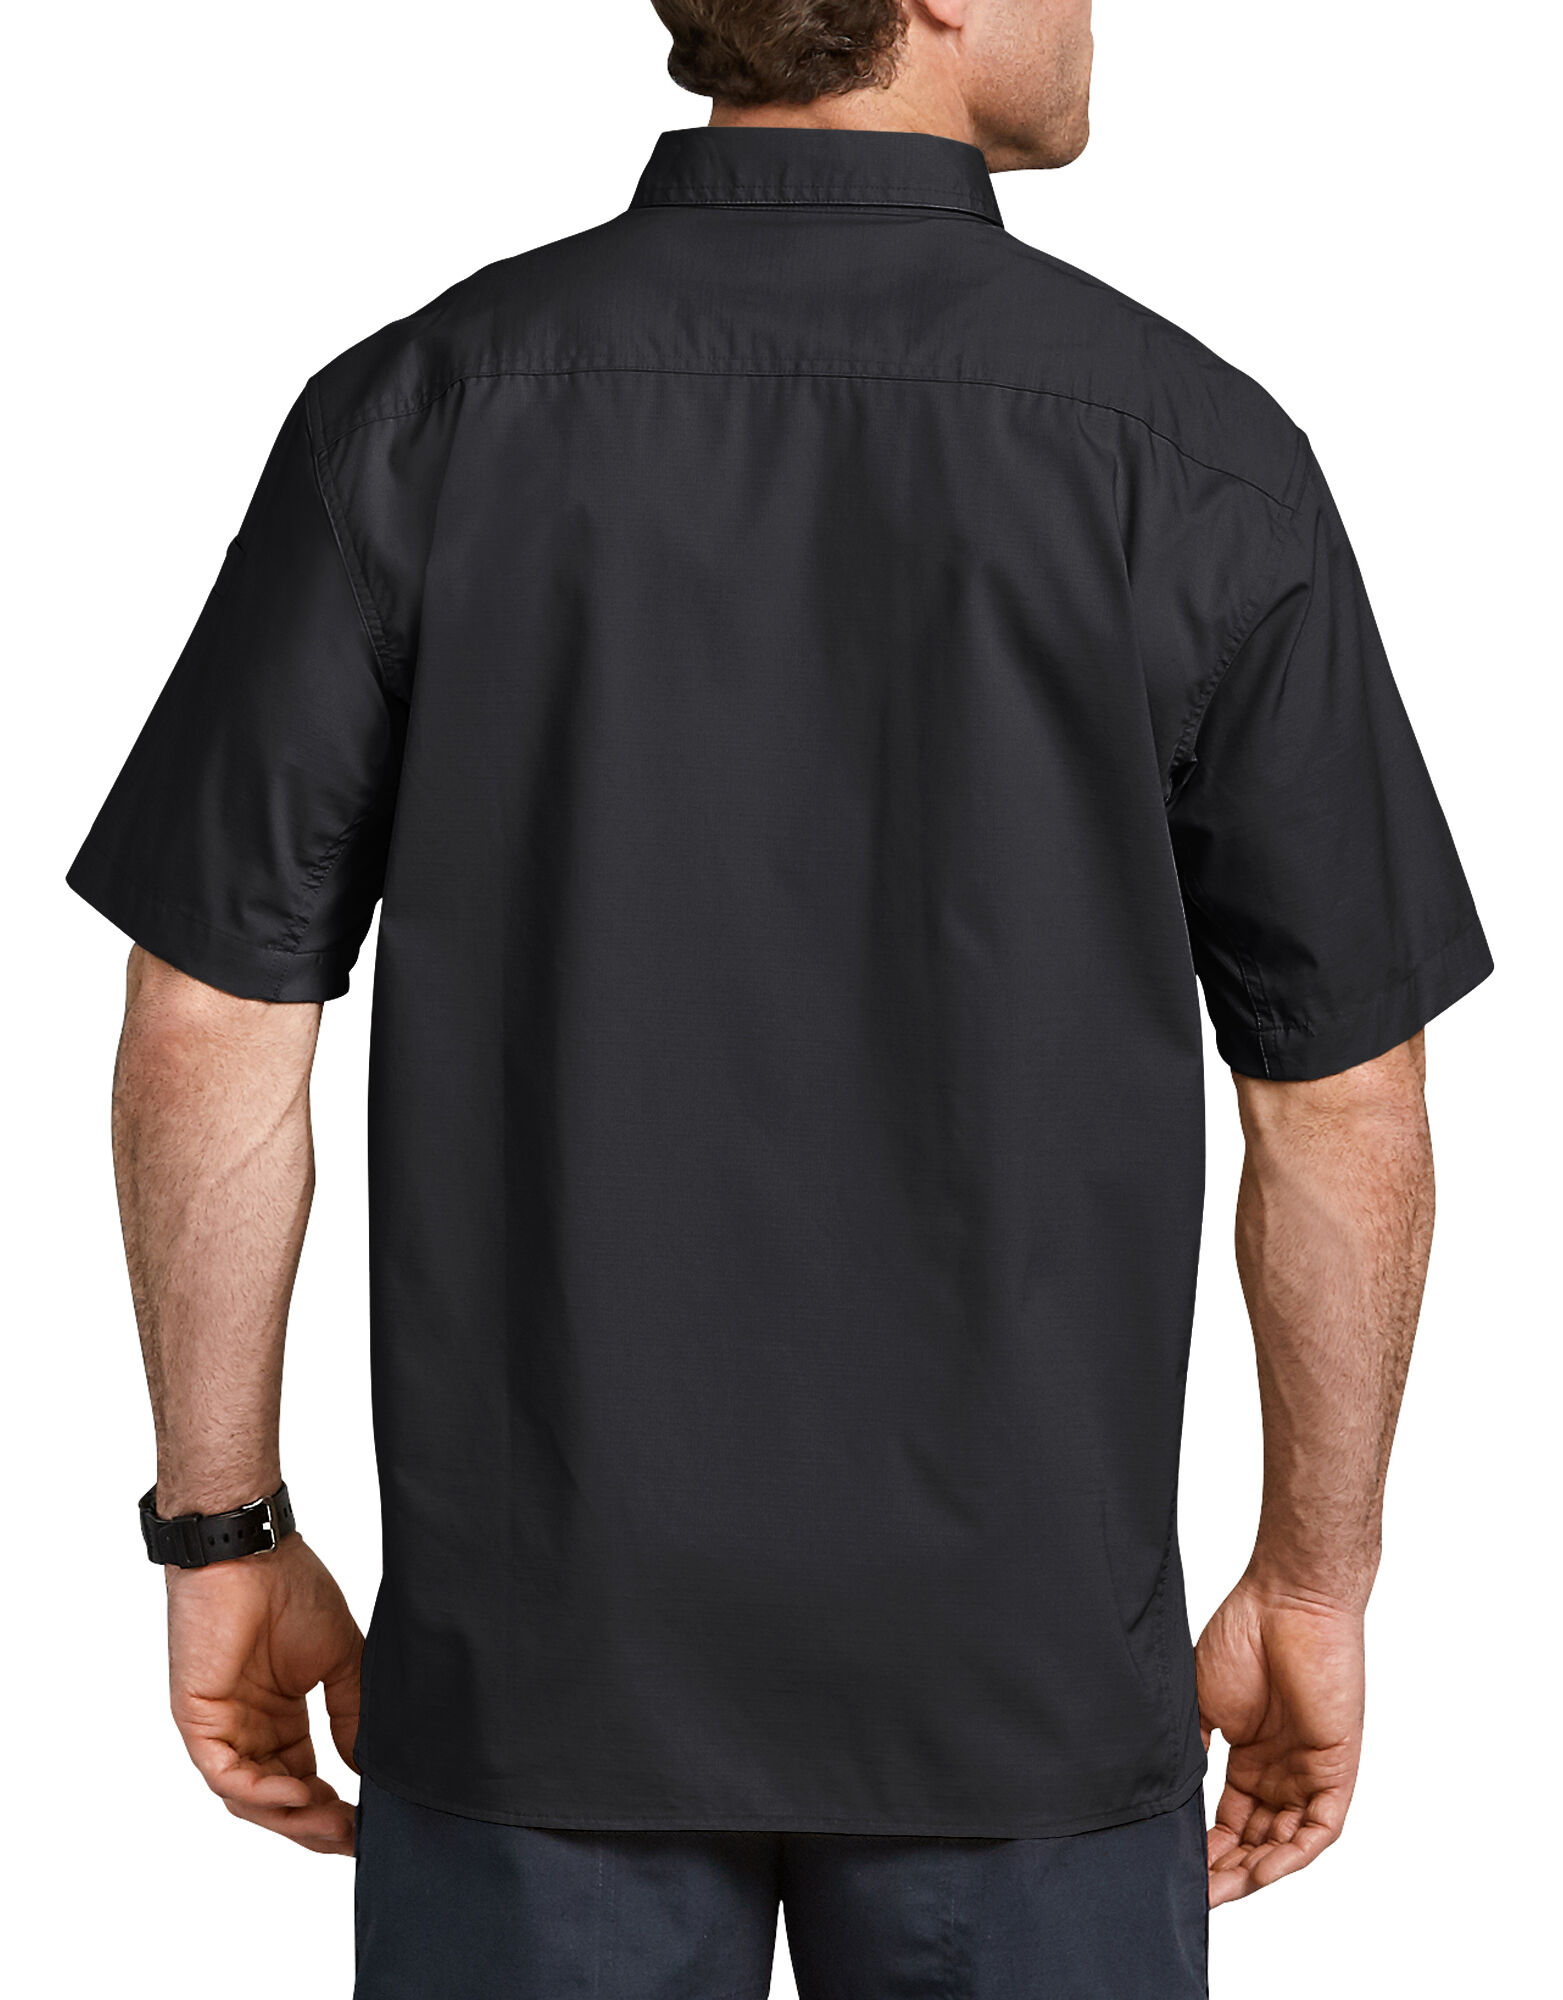 ... Tactical Ventilated Ripstop Short Sleeve Shirt - Black ... 55c5ab8b790